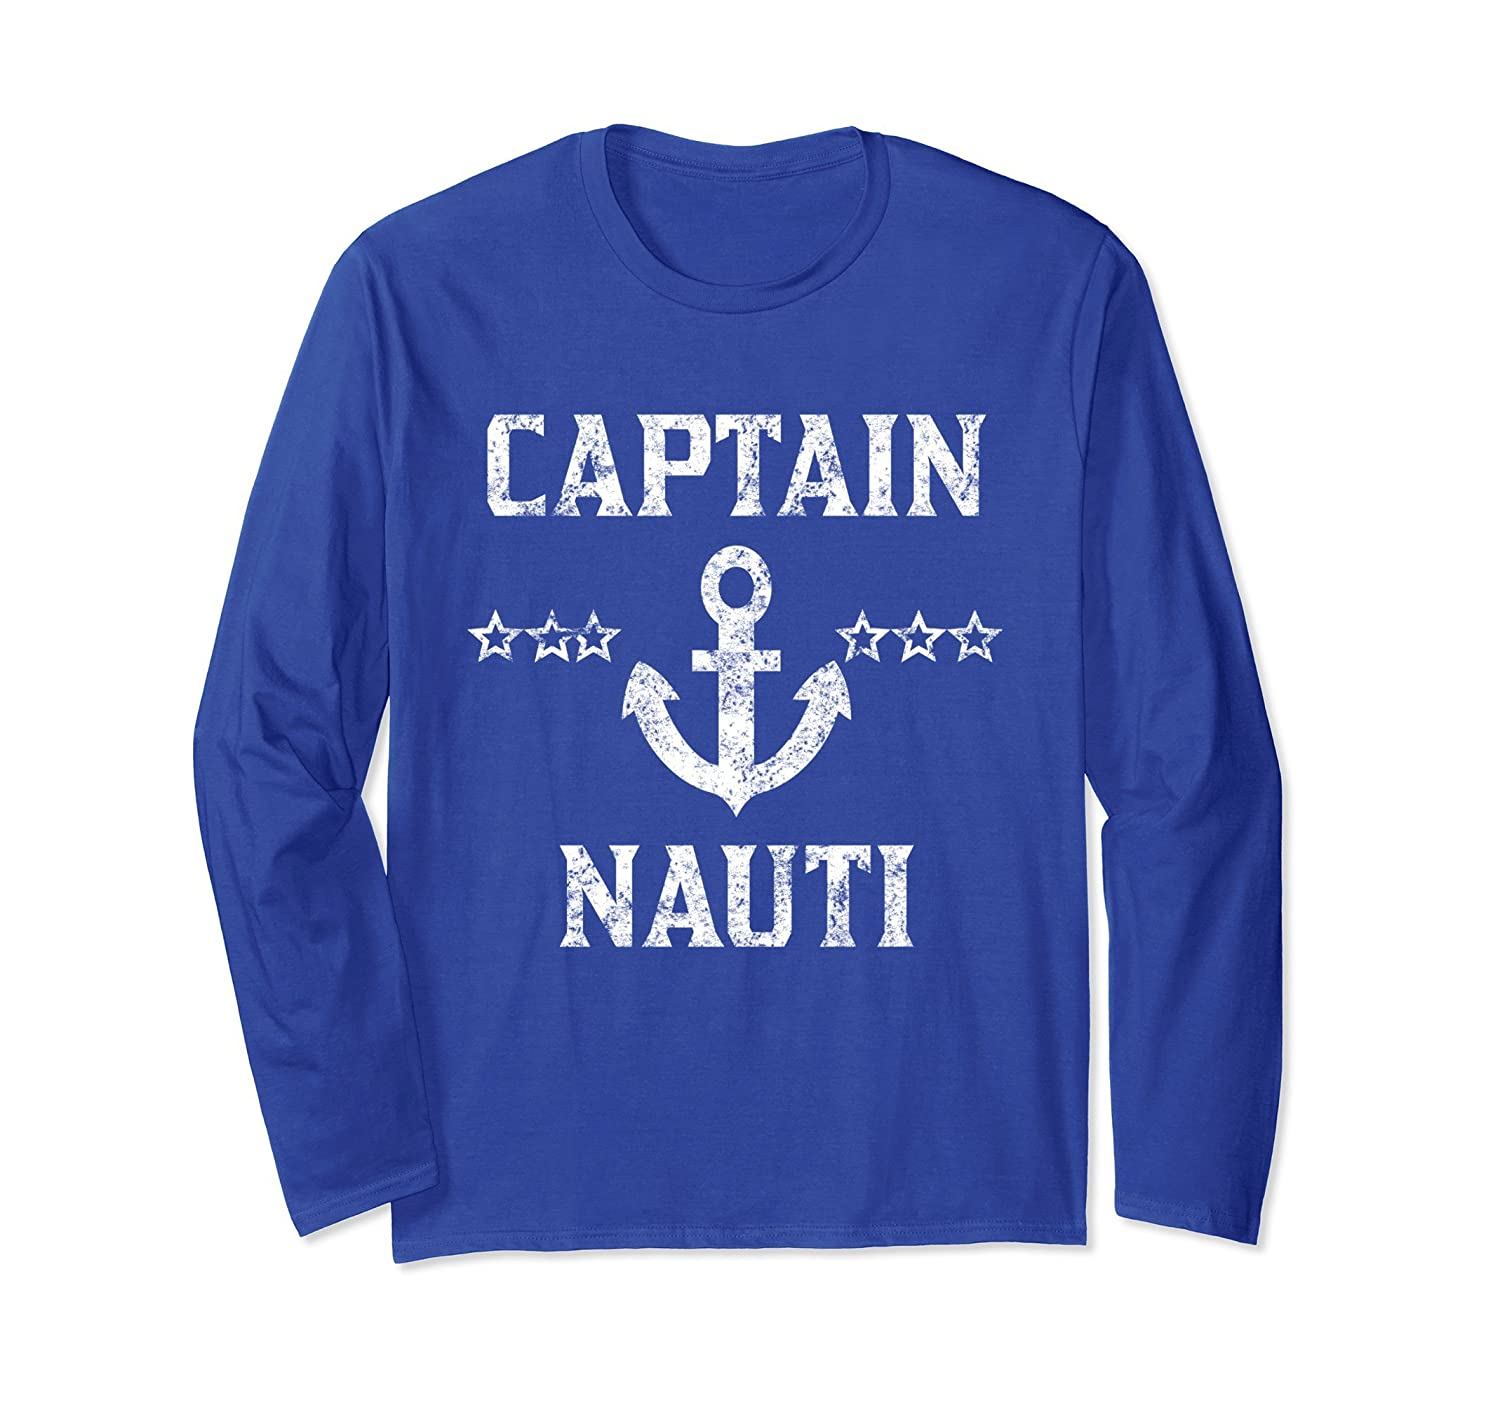 Vintage Captain Nauti Long Sleeve Shirt Cruise or Boating-TH